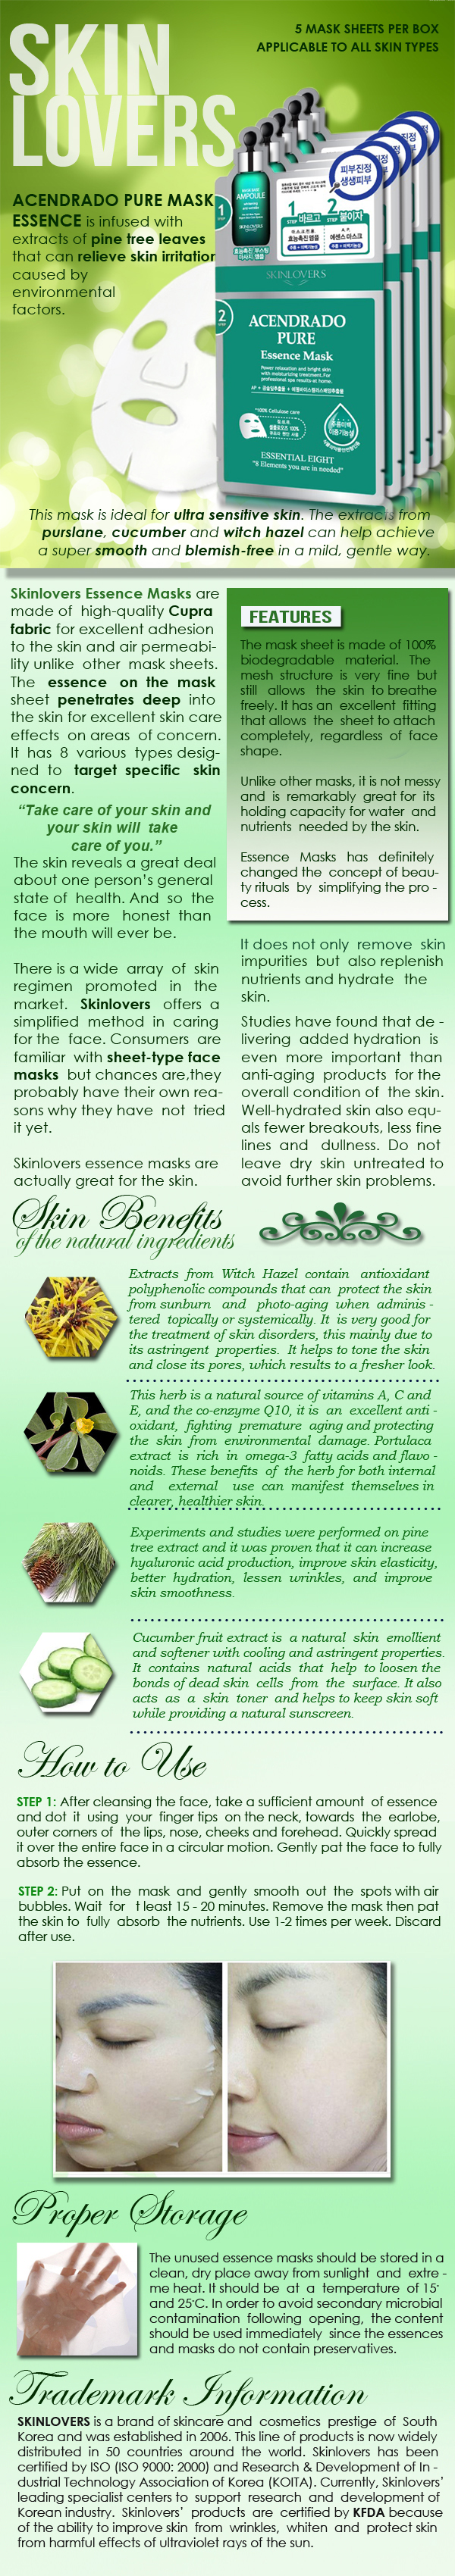 Skinlovers Acendrado Pure Essence Mask Product Information